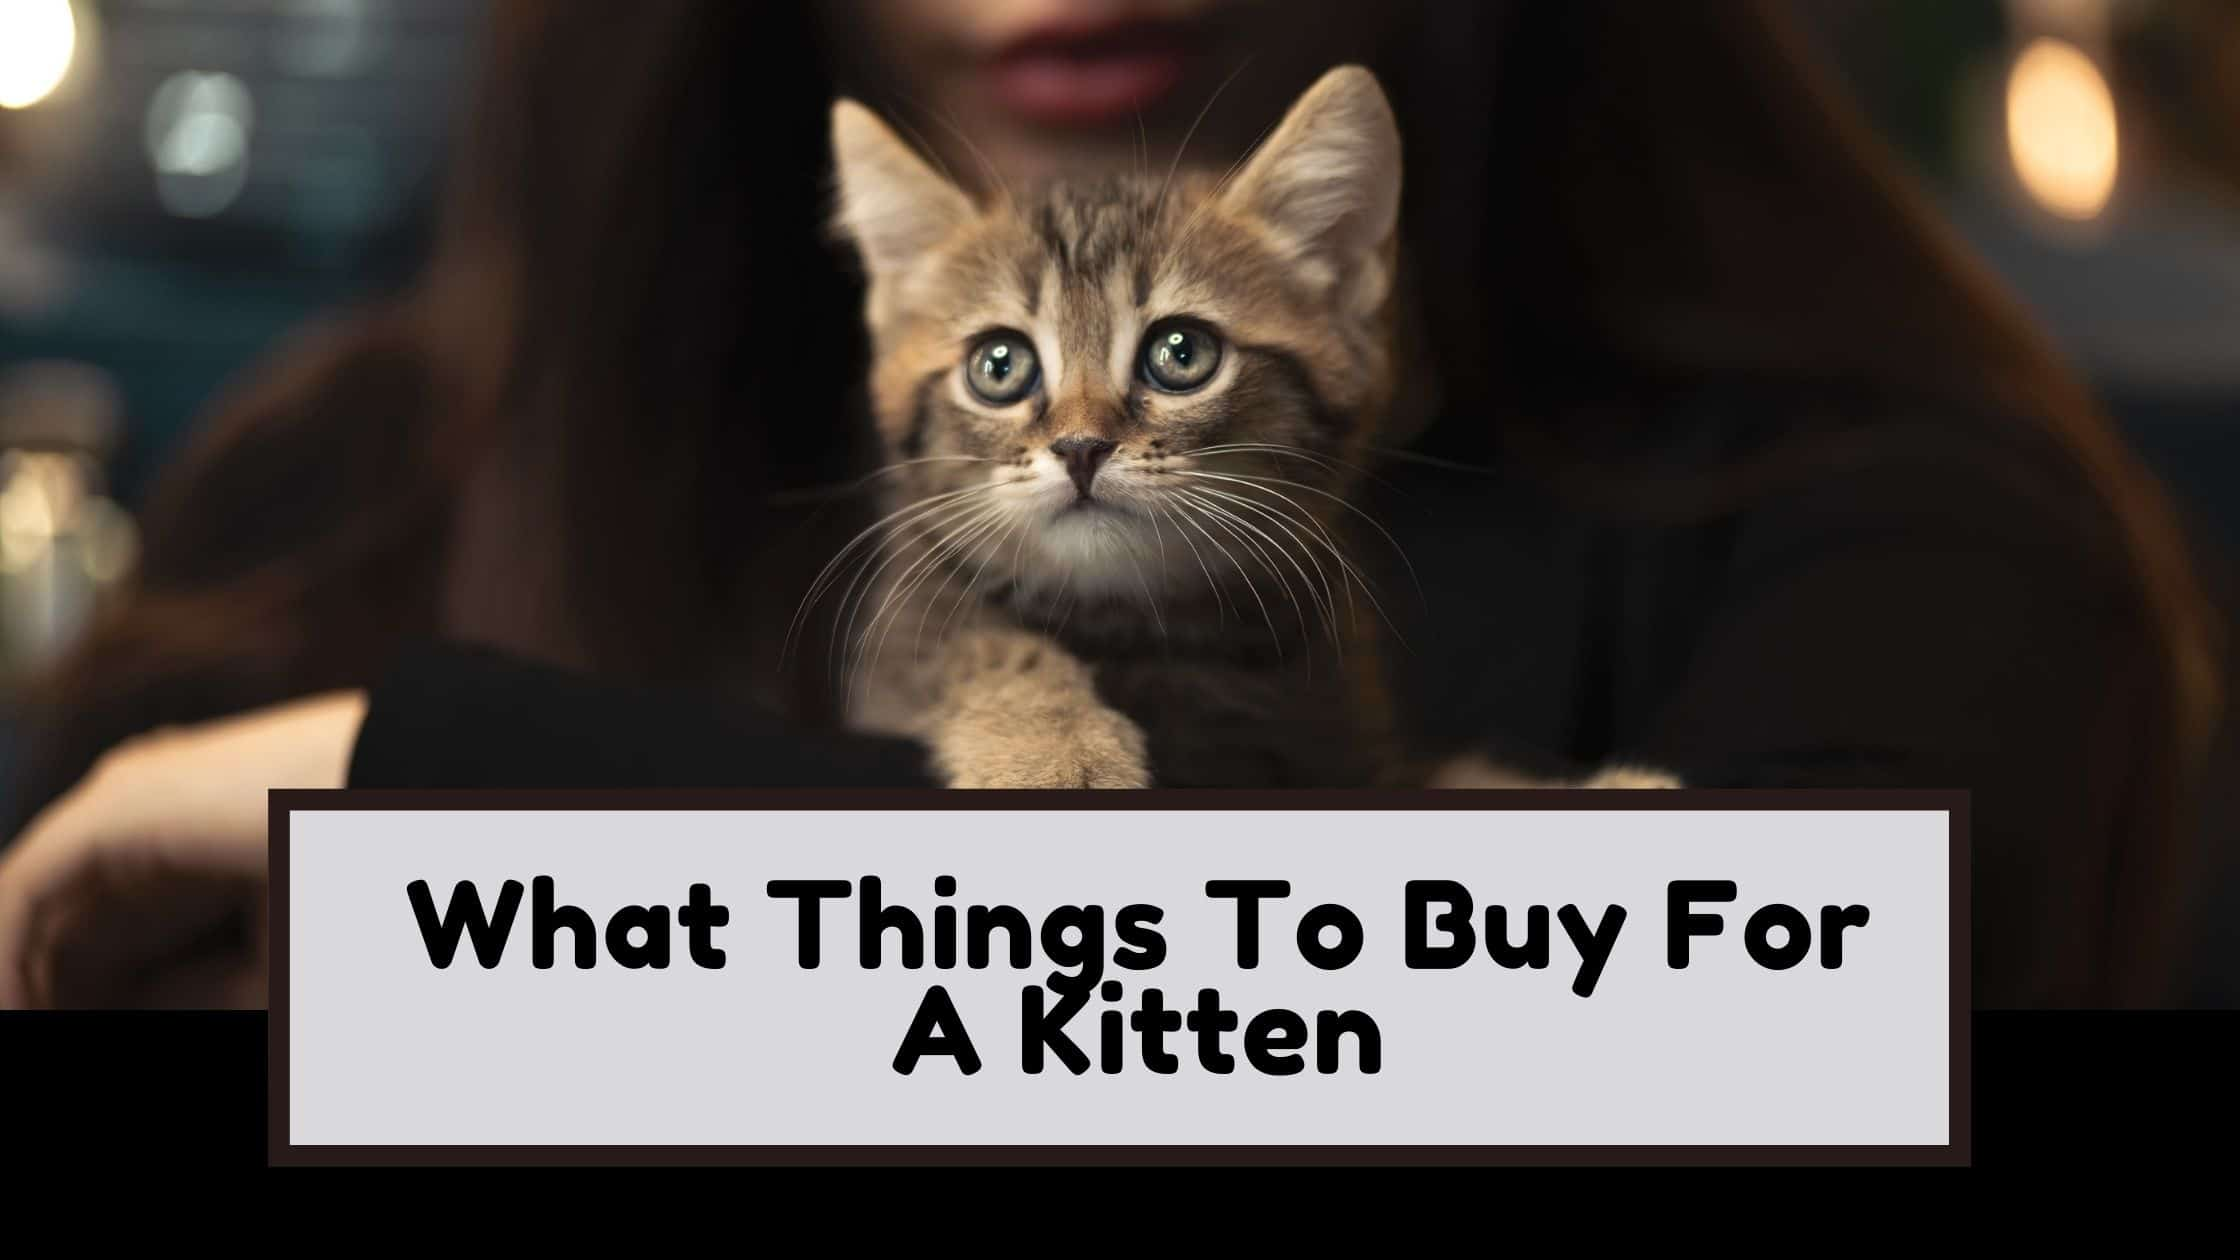 What Things To Buy For A Kitten